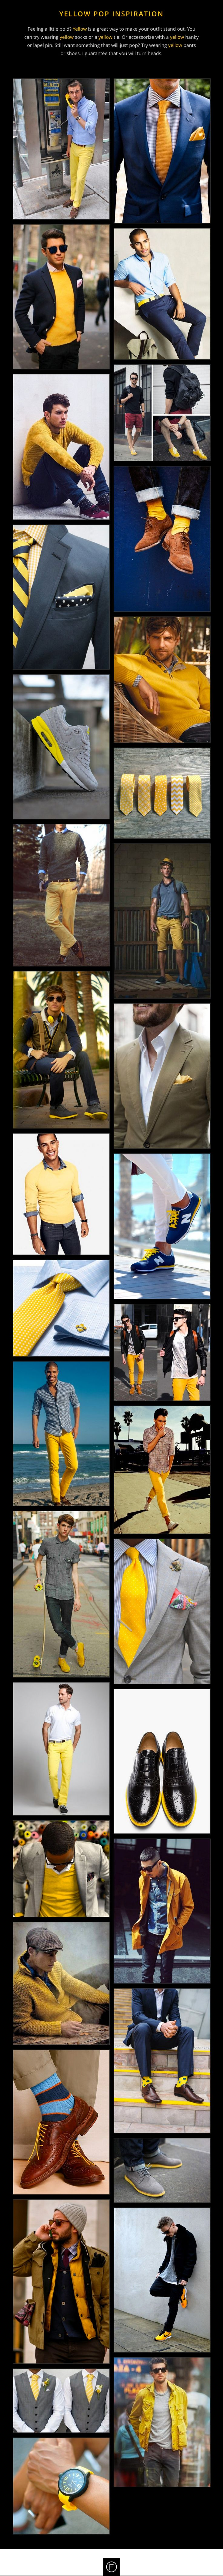 #mensfashion #yellow #menswear #Mensstyle